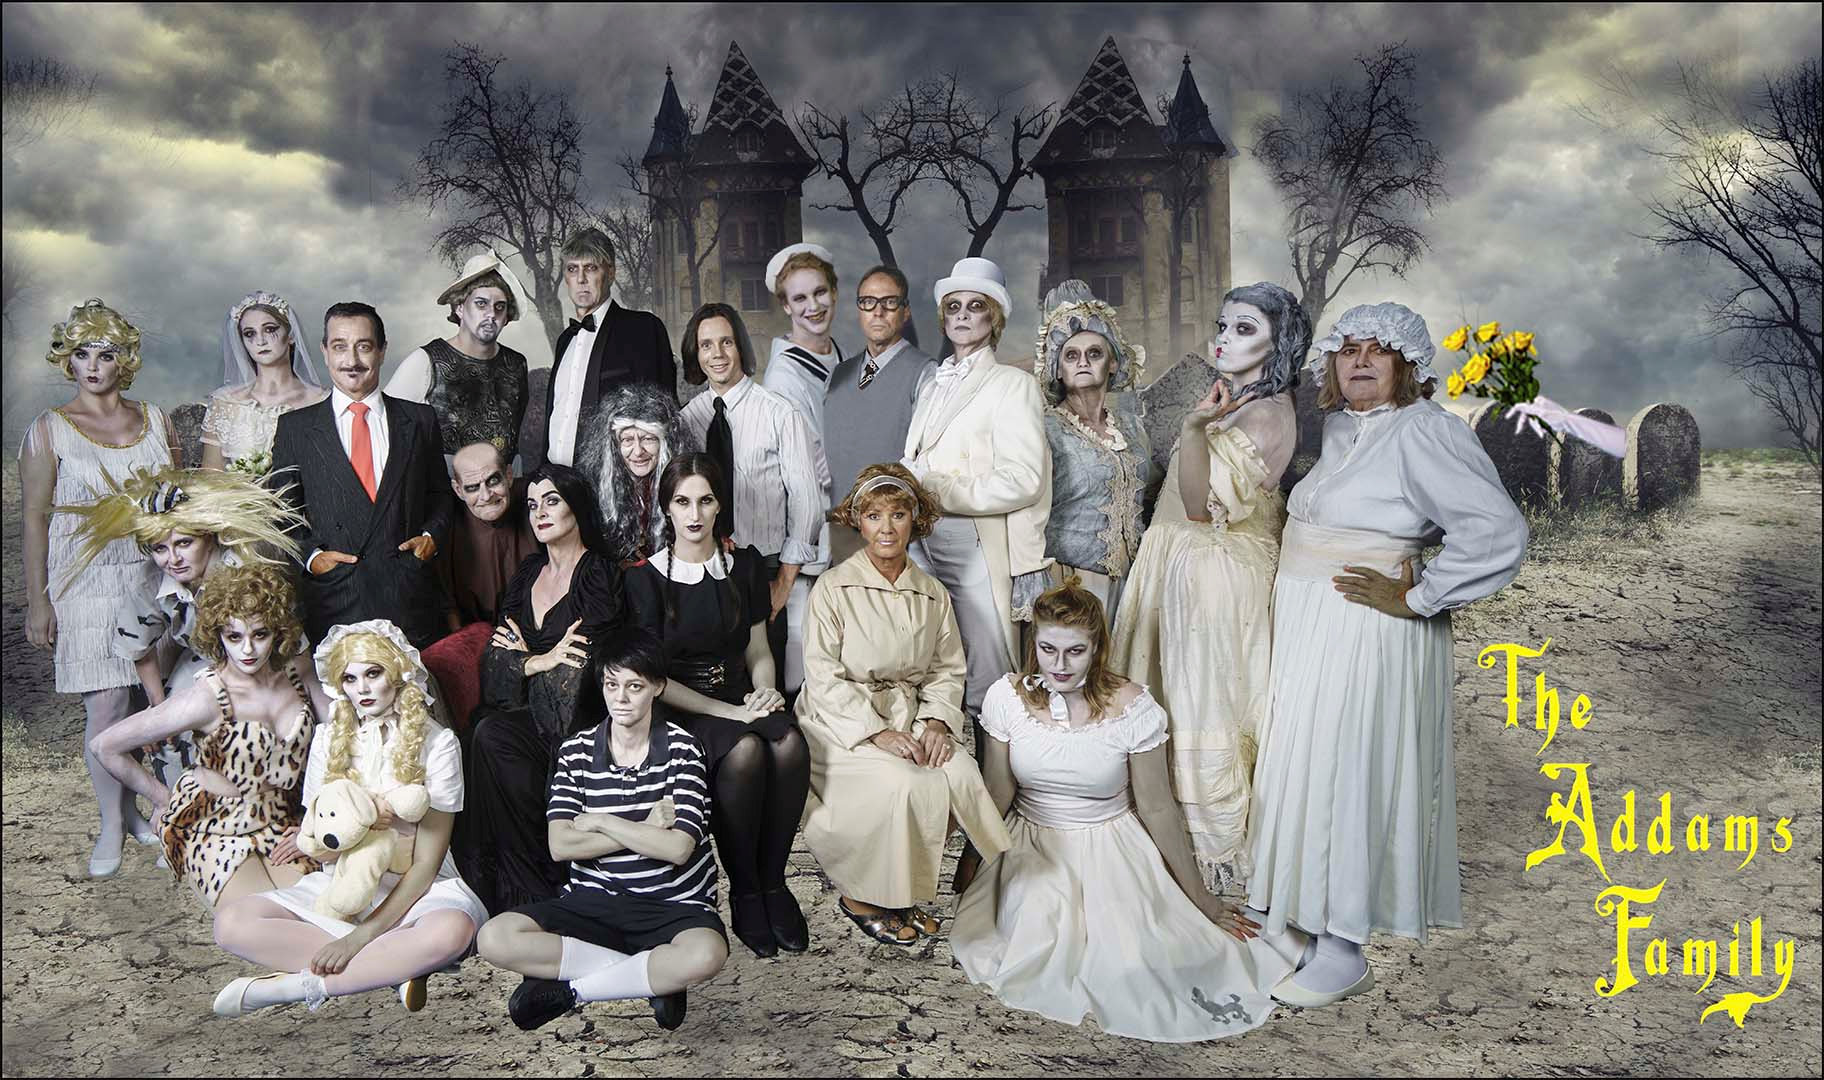 The Addams Family  U2013 Coolum Theatre Players